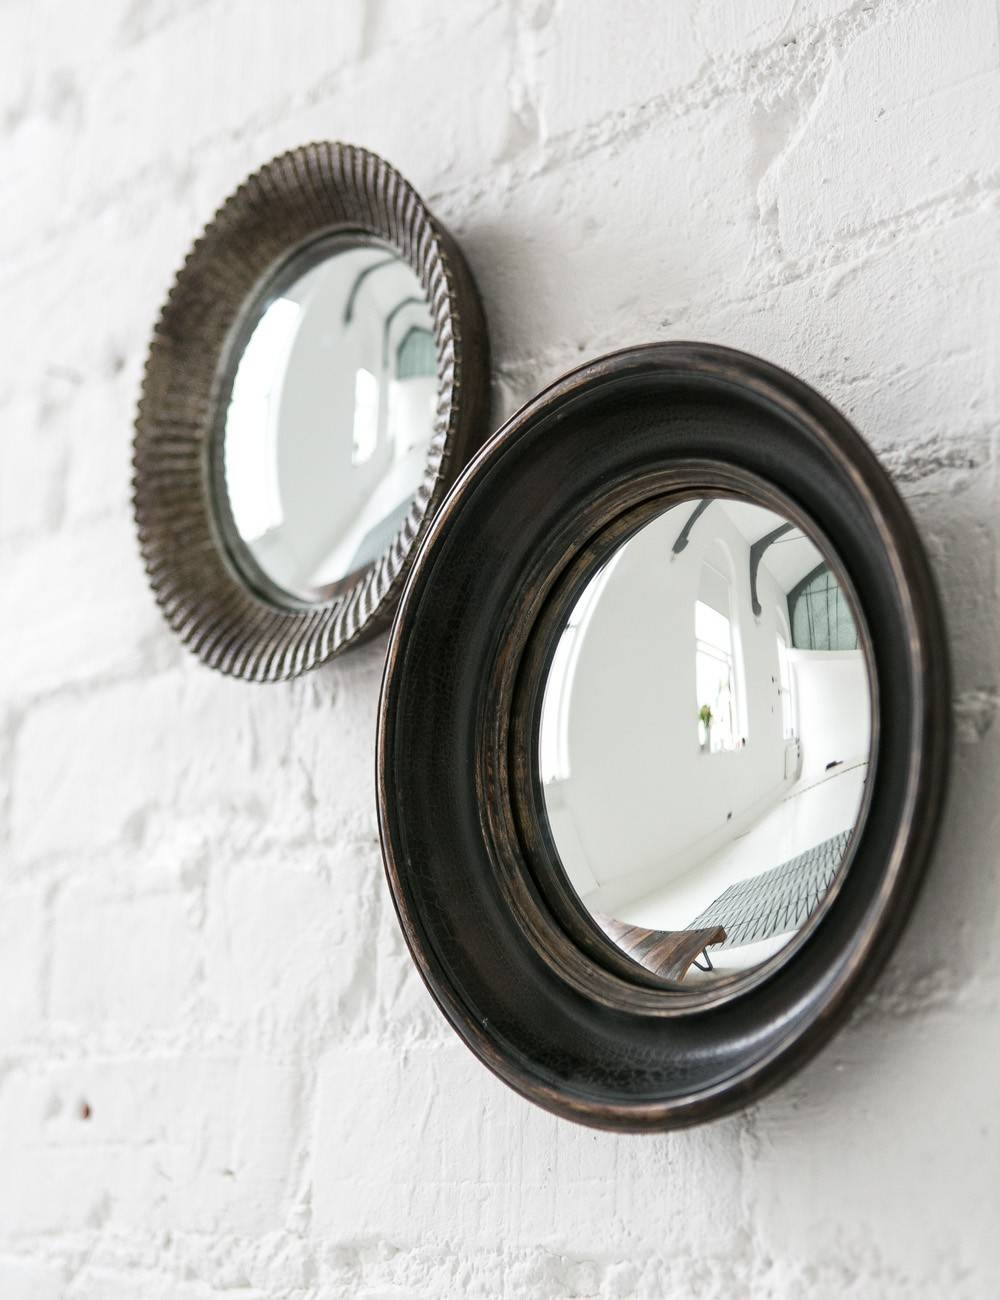 Small Convex Mirror For Creating Striking Wall Decoration | Homesfeed Inside Convex Decorative Mirrors (View 12 of 15)